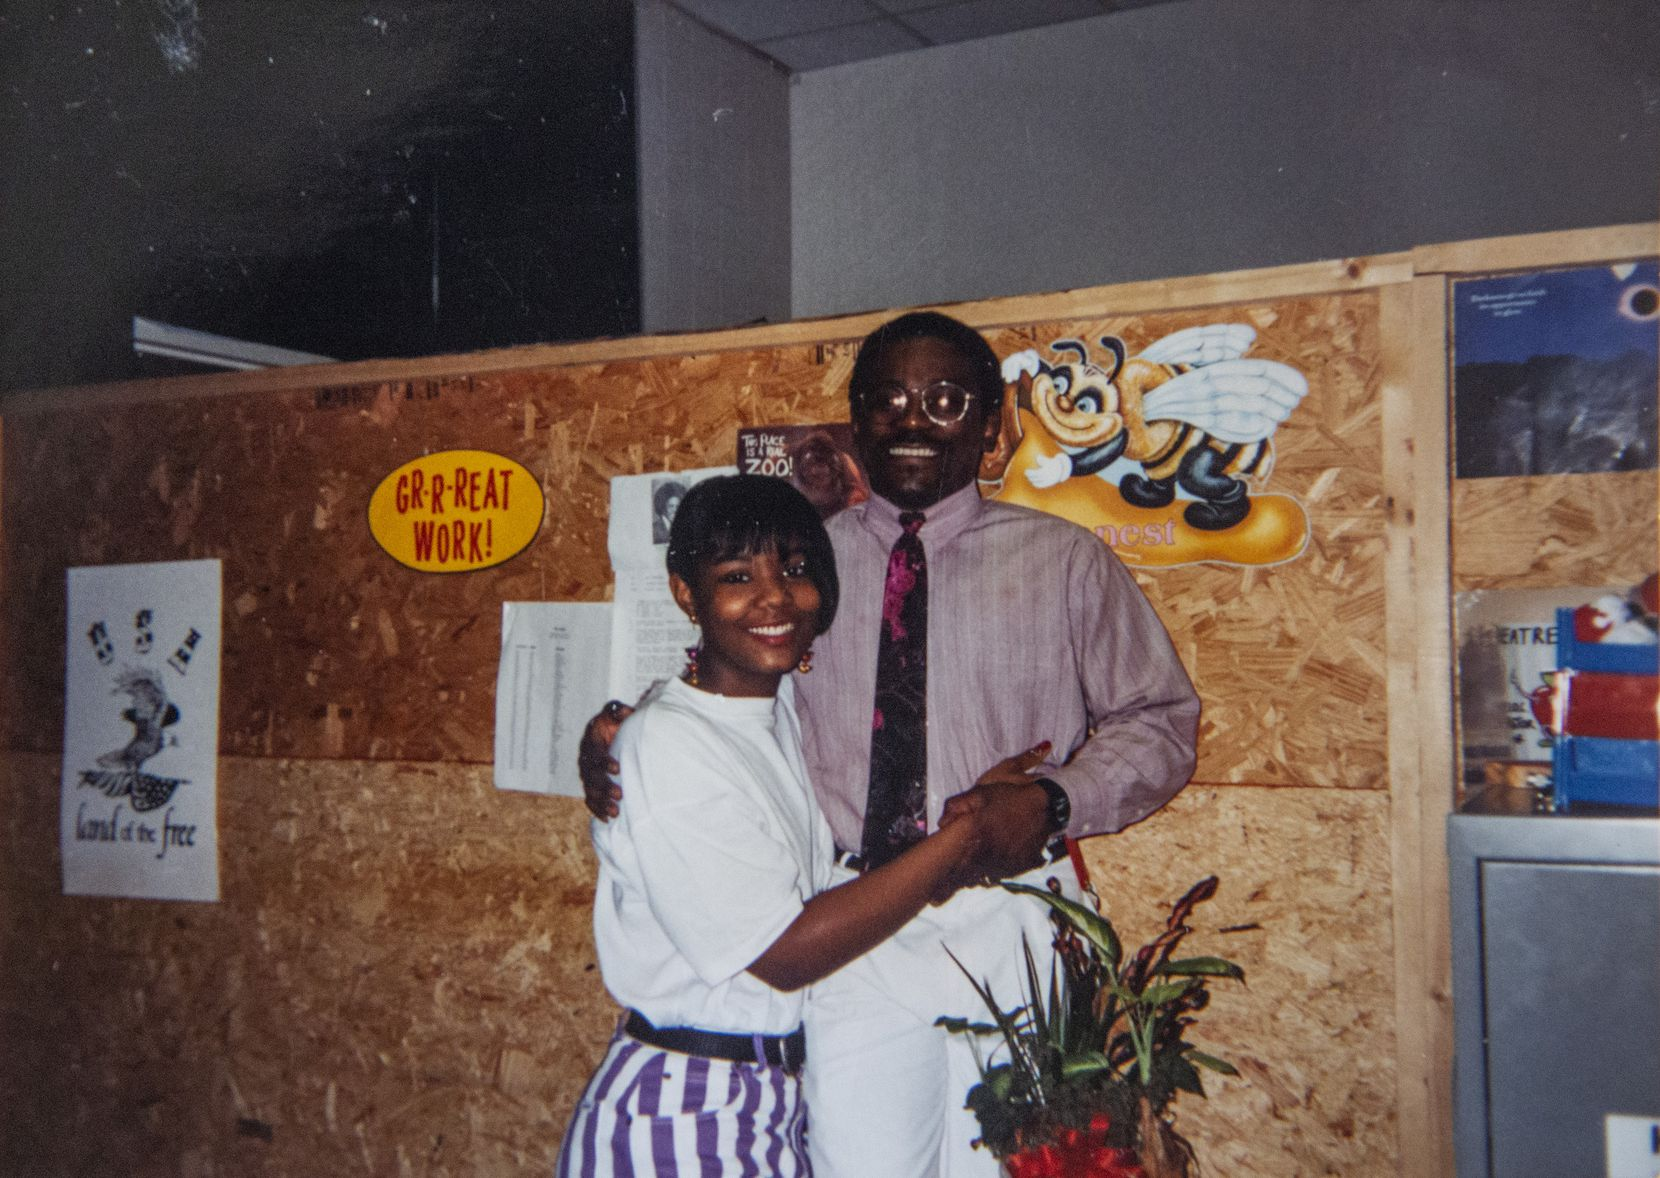 Renee Phillips, shown with Pastor Rickie Rush in an undated photo, was in Rush's theater arts class as a sophomore at Skyline High School in 1991-92.